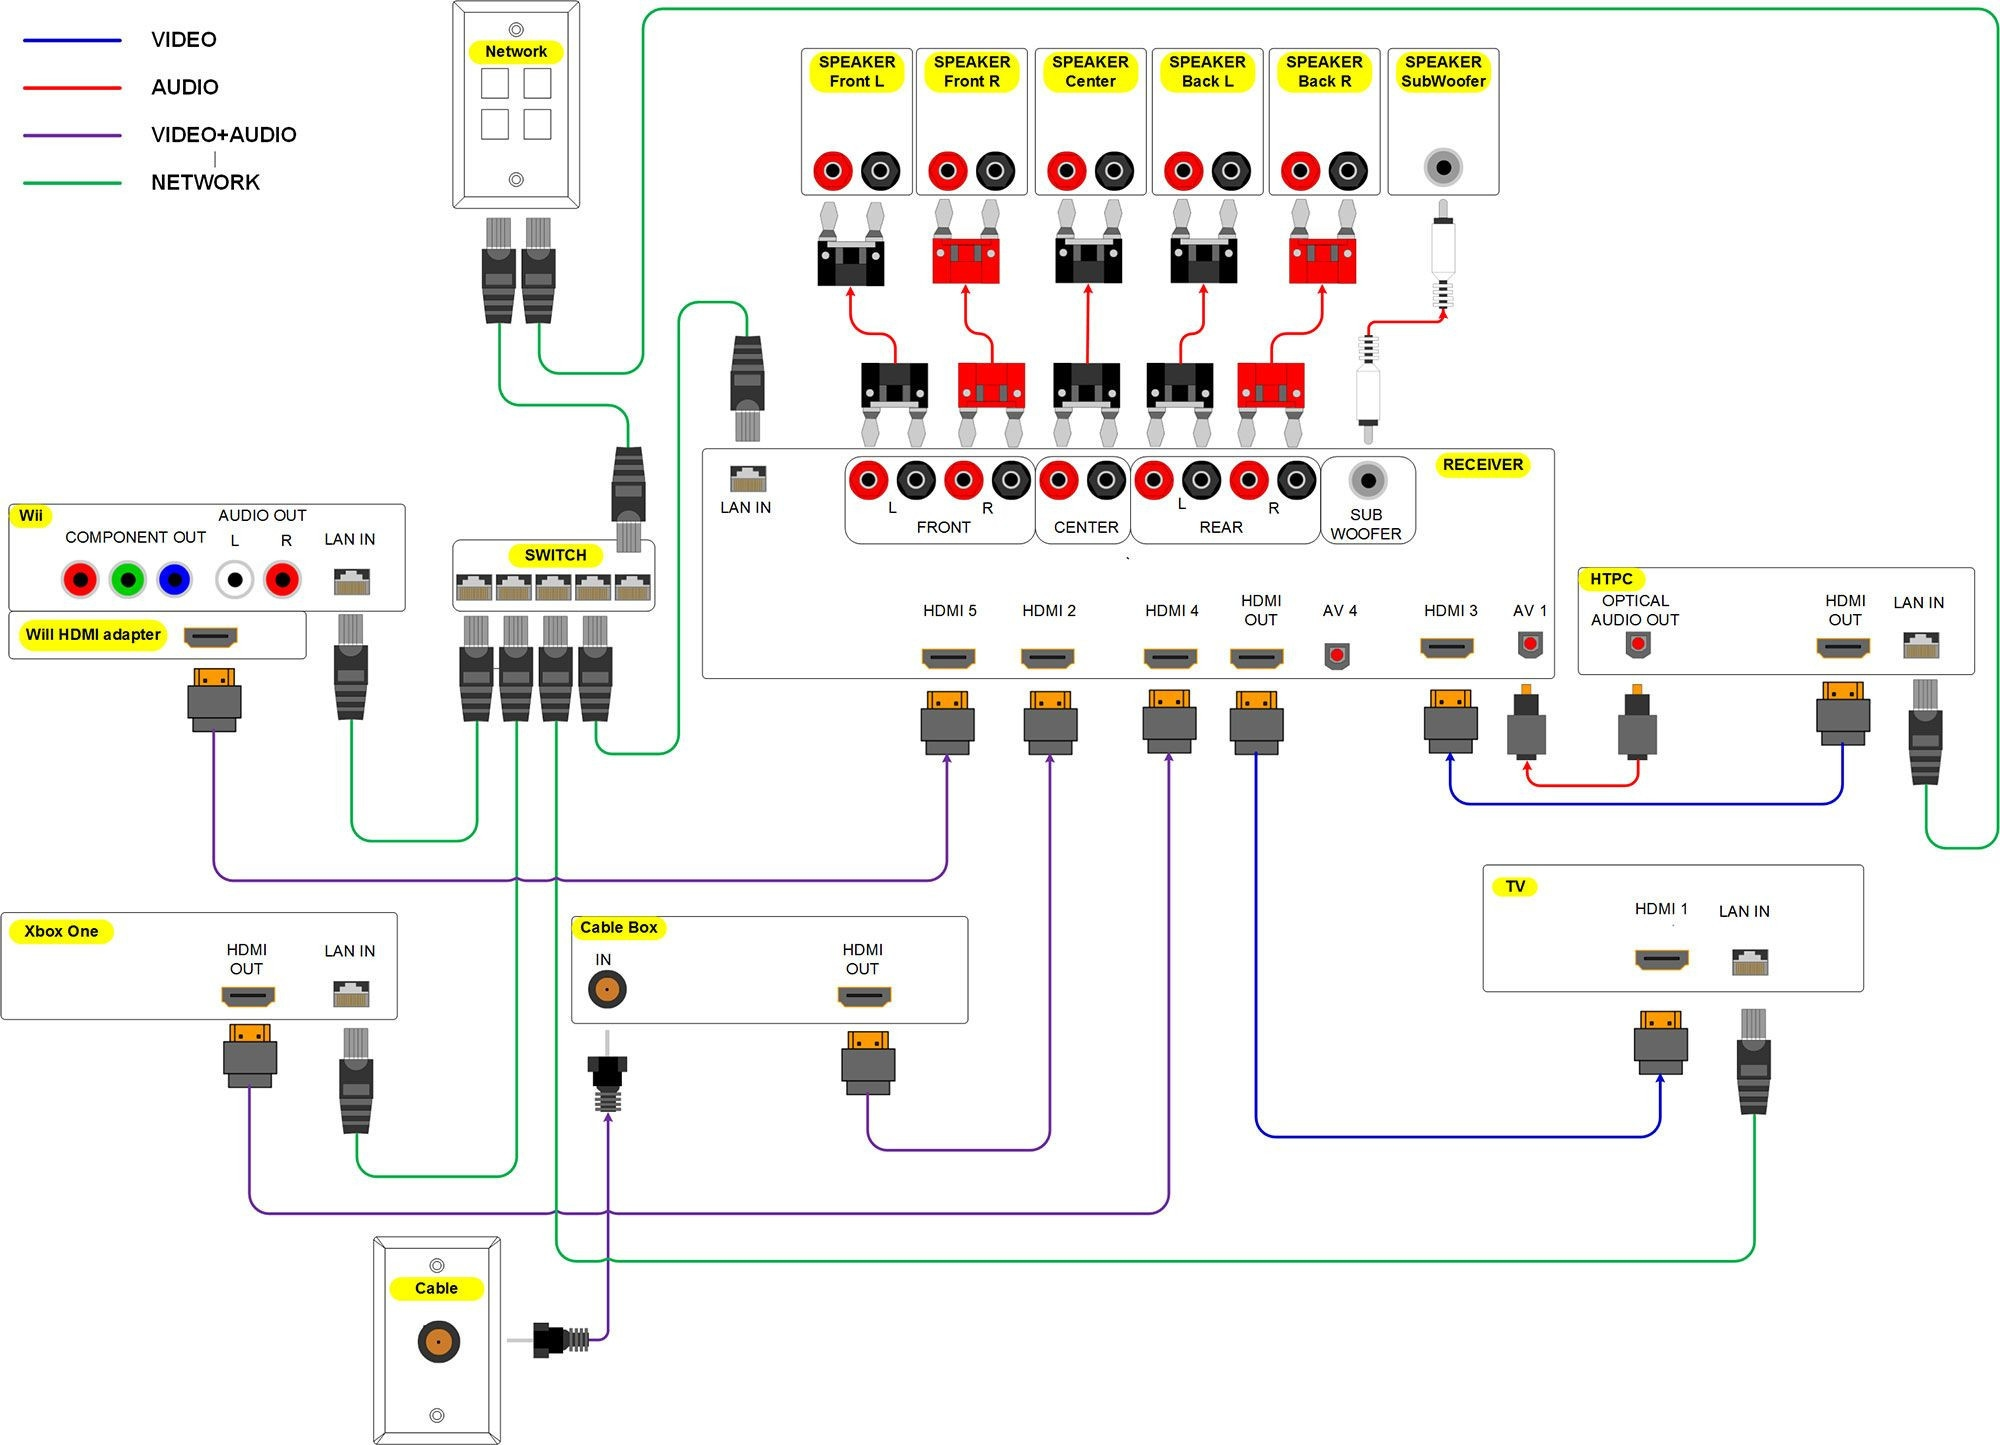 bose home theater wiring diagram Download-home theatre wiring diagram wire center u2022 rh prevniga co 16-m